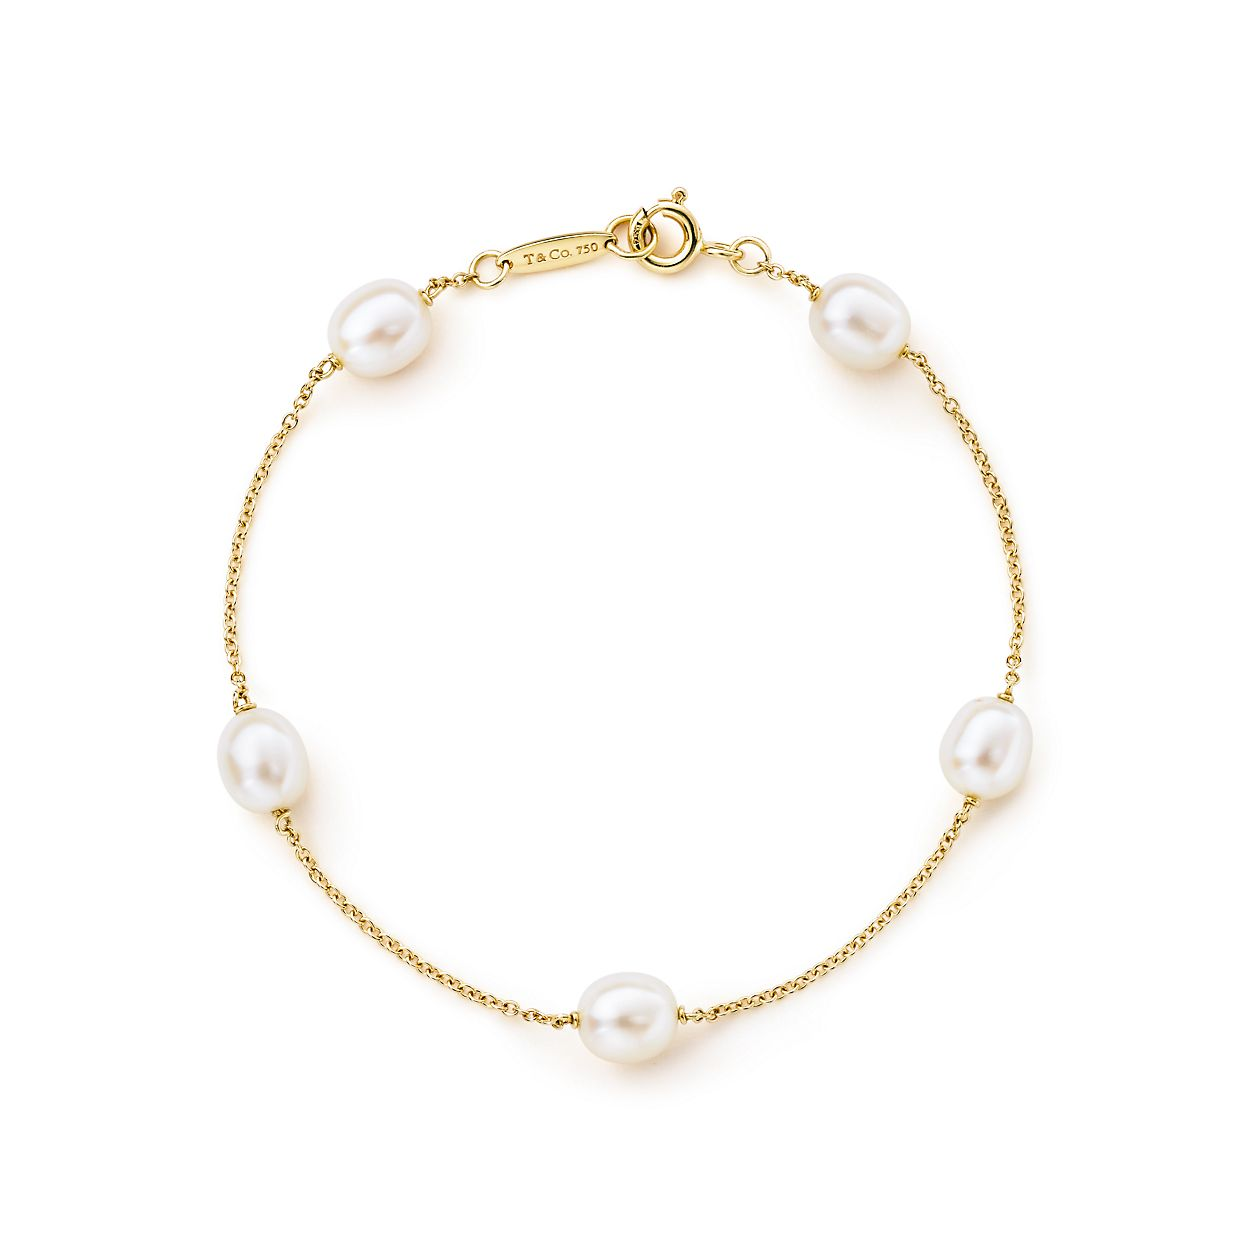 Elsa Peretti Pearls by the Yard bracelet in sterling silver - Size Tiffany & Co. hMUGdPh1vd